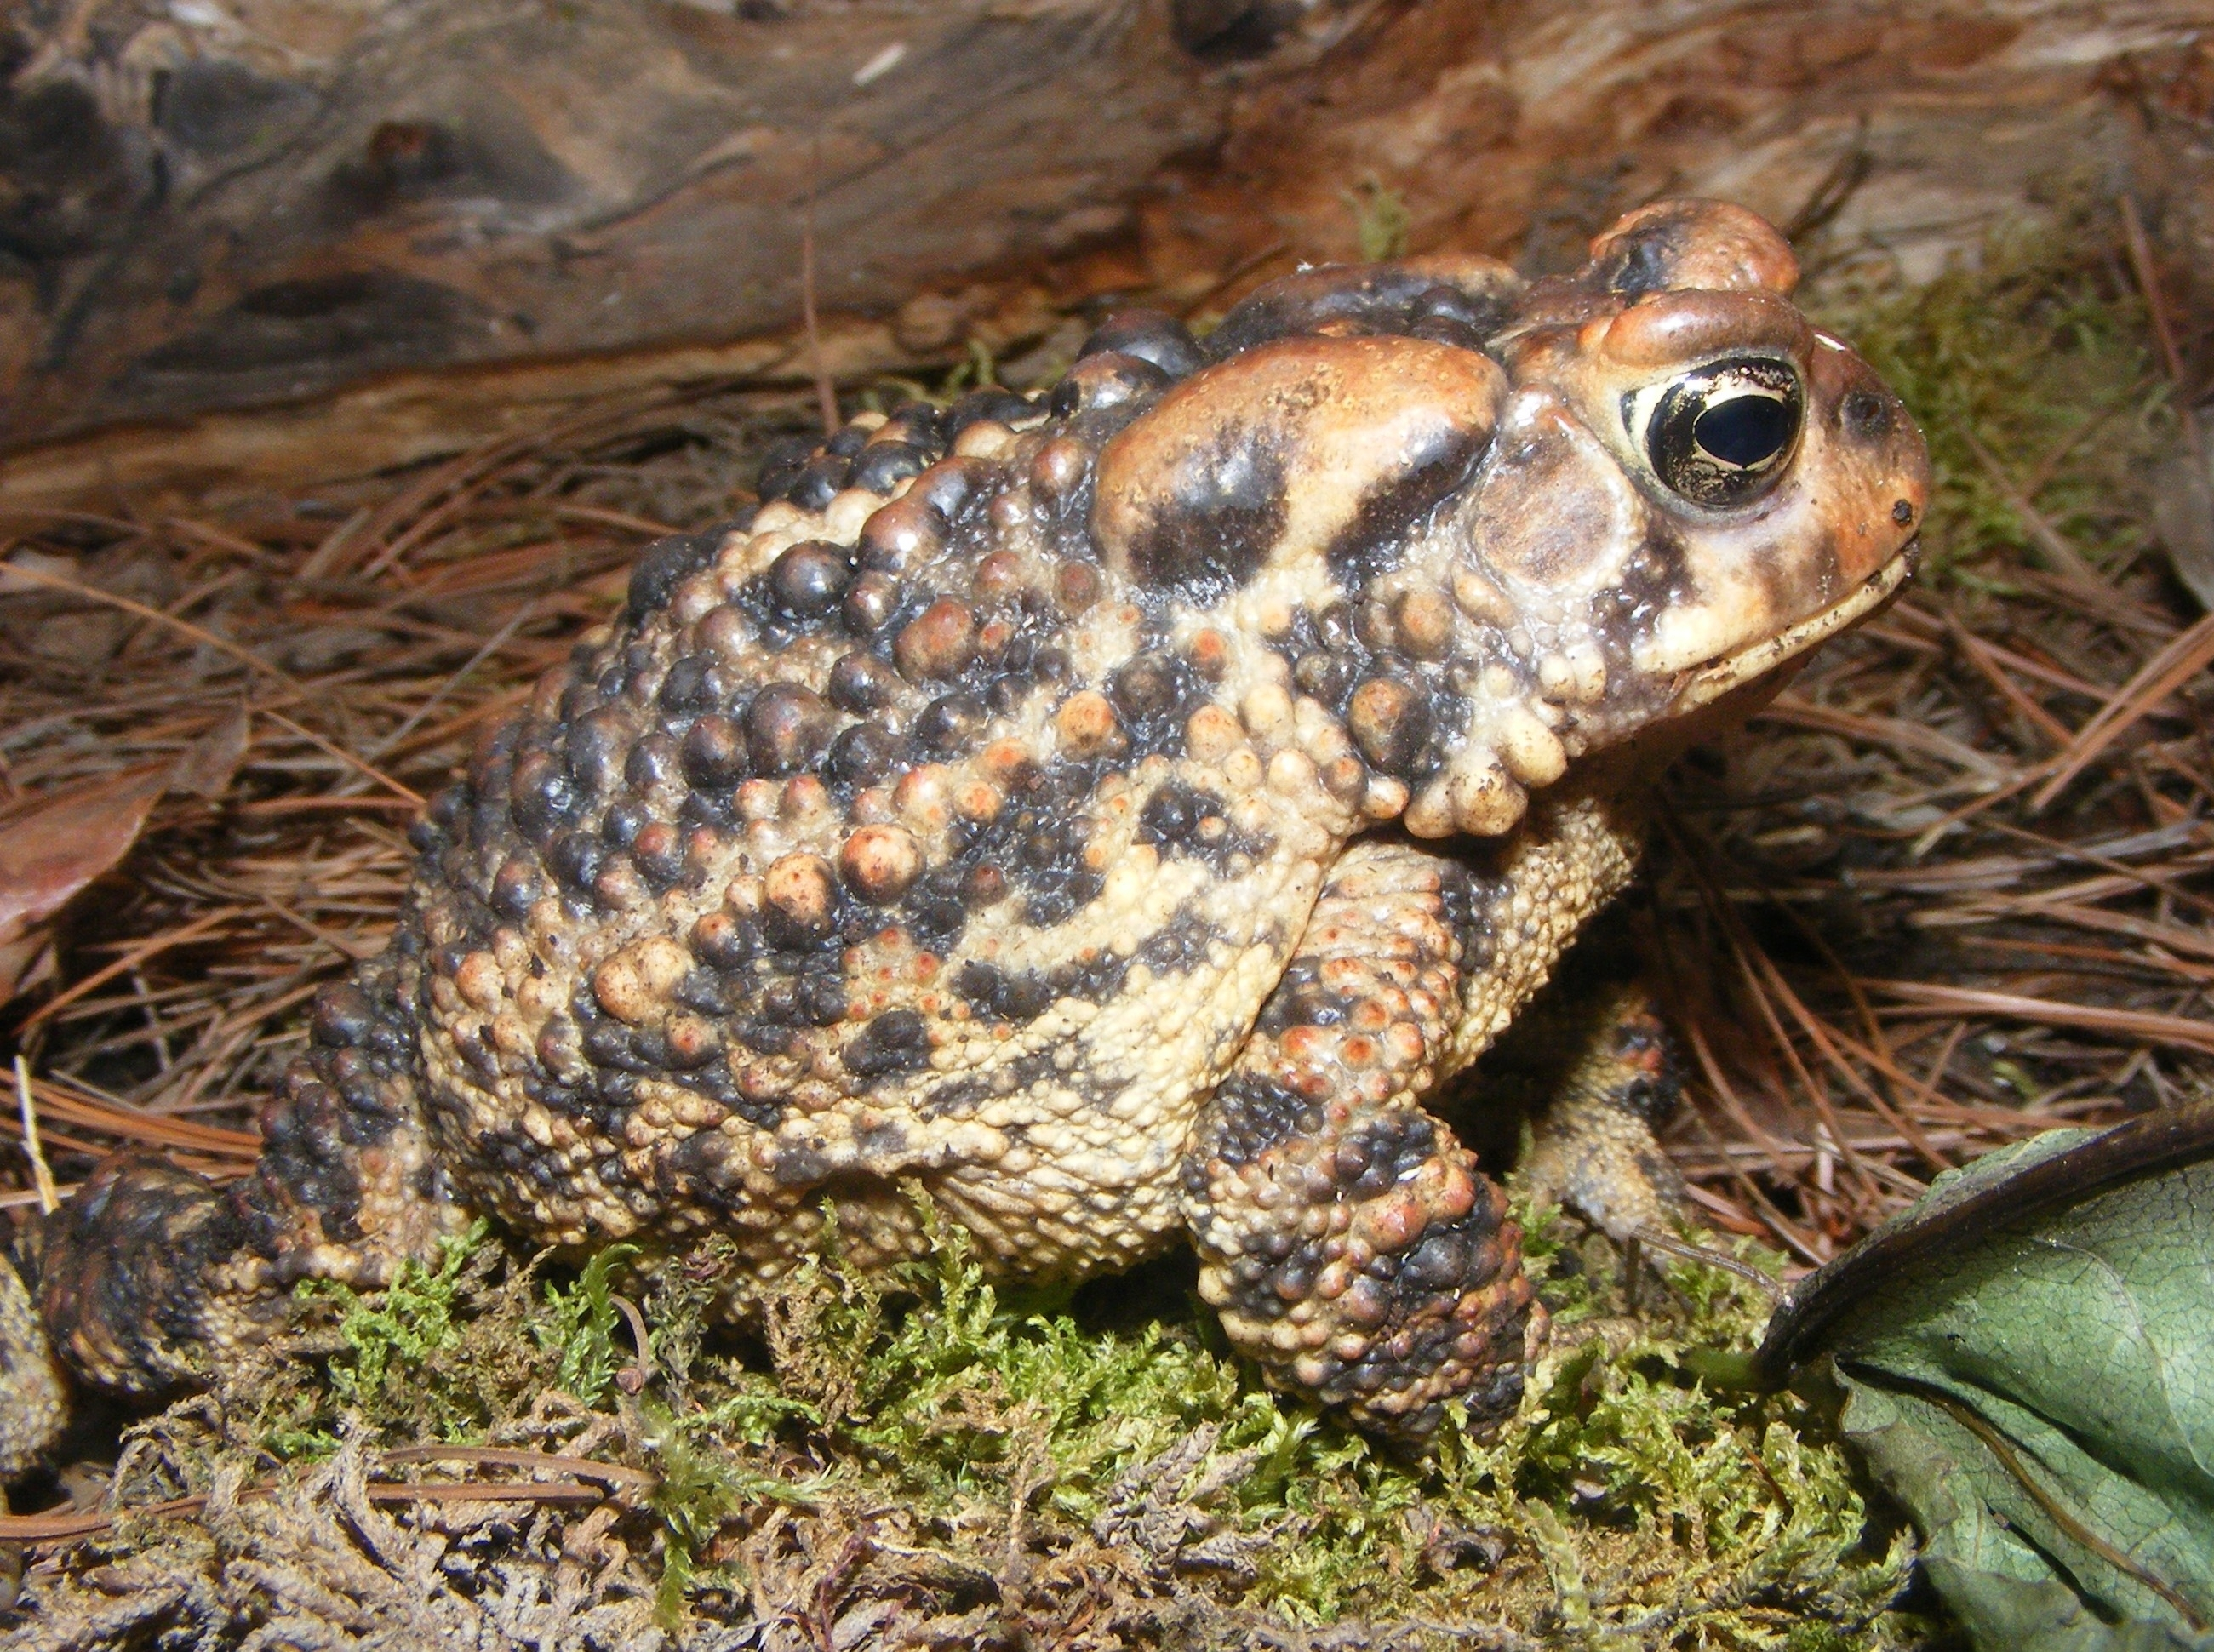 MIGRATE OVER TO CLEVELAND METROPARKS NORTH CHAGRIN NATURE CENTER FOR A TOAD-ALLY AWESOME AMPHIBIANS EVENT